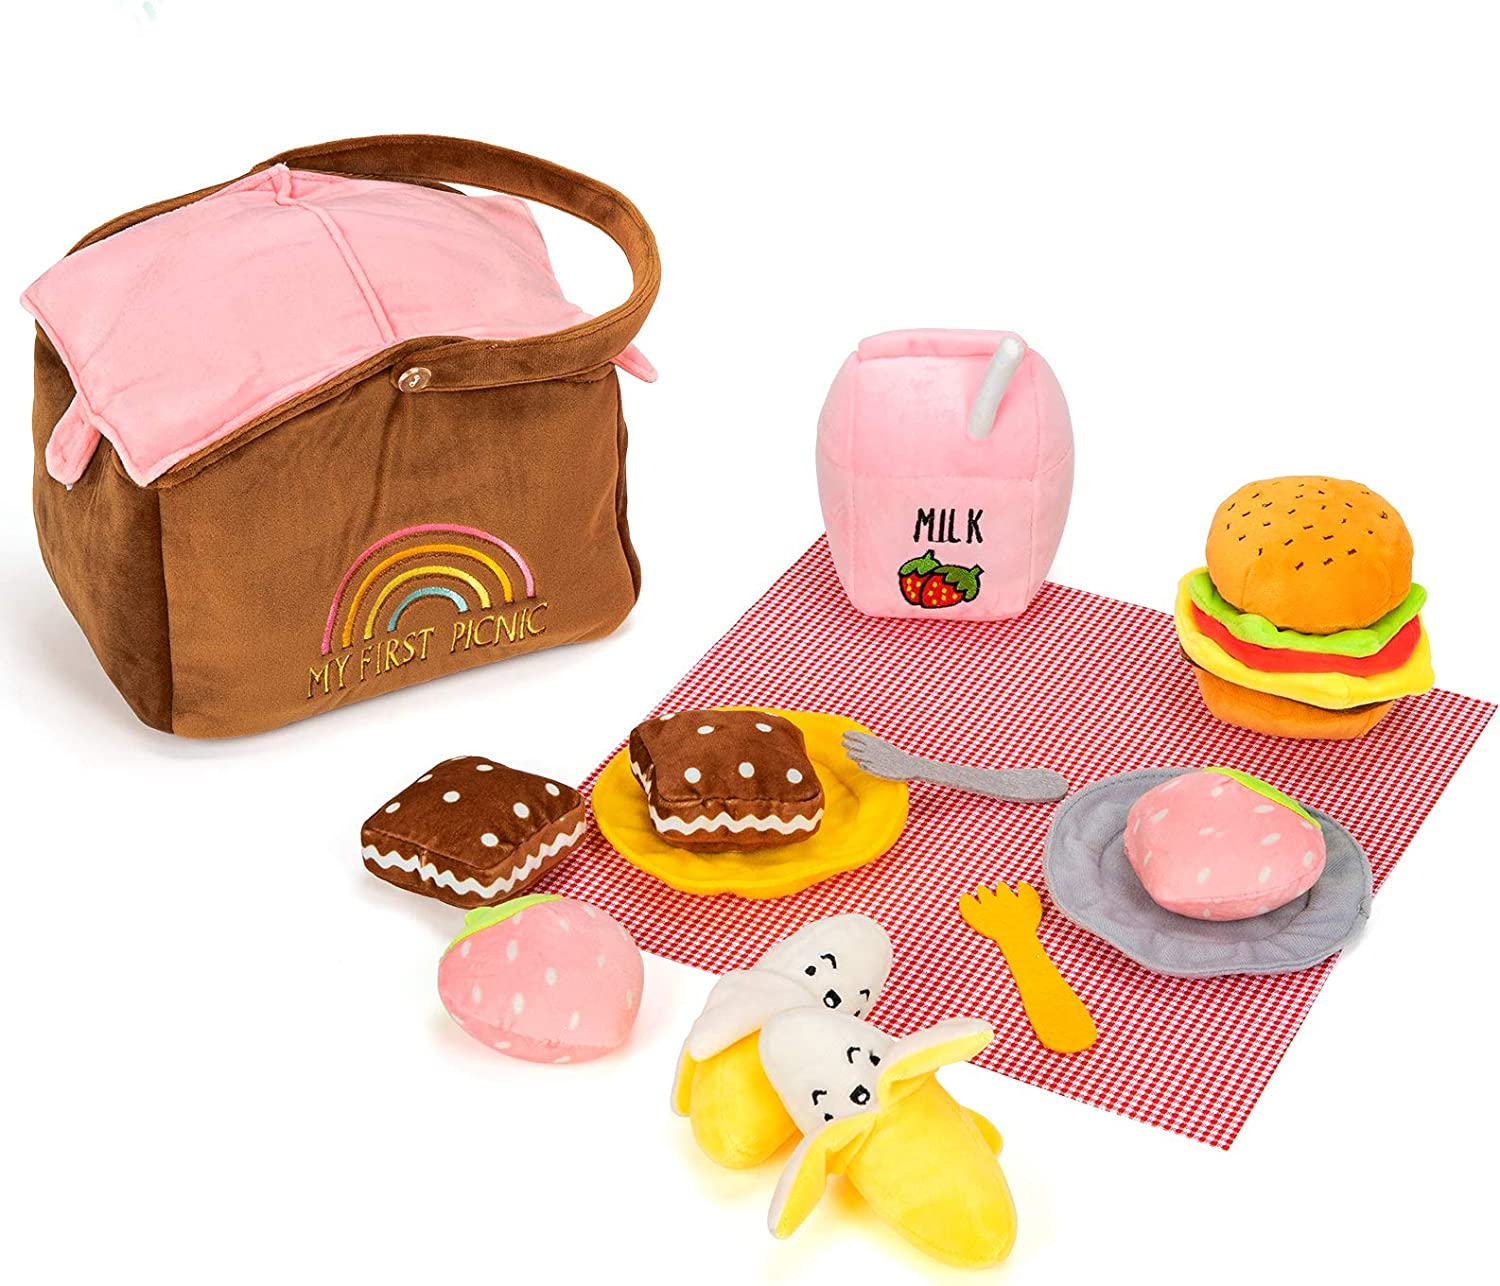 TCBunny 14 Piece Set of Plush Soft Stuffed Picnic Food Playset, Imaginative Play, Picnic Toy with Sounds, Toddler for Ages 3+